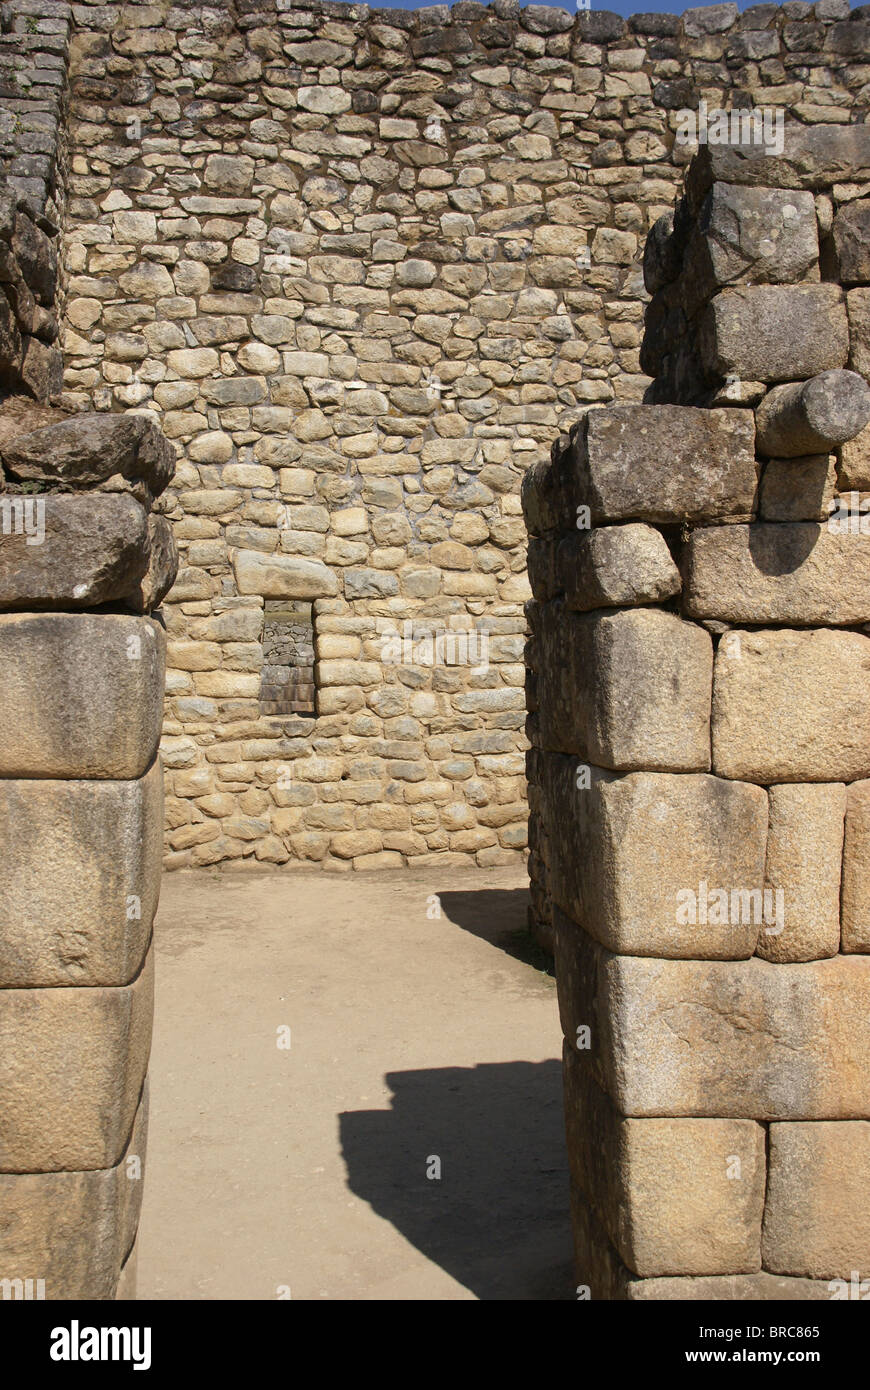 Trapezoidal window and door for earthquake protection, Inca ruins Machu Picchu, Peru, South America  - Stock Image